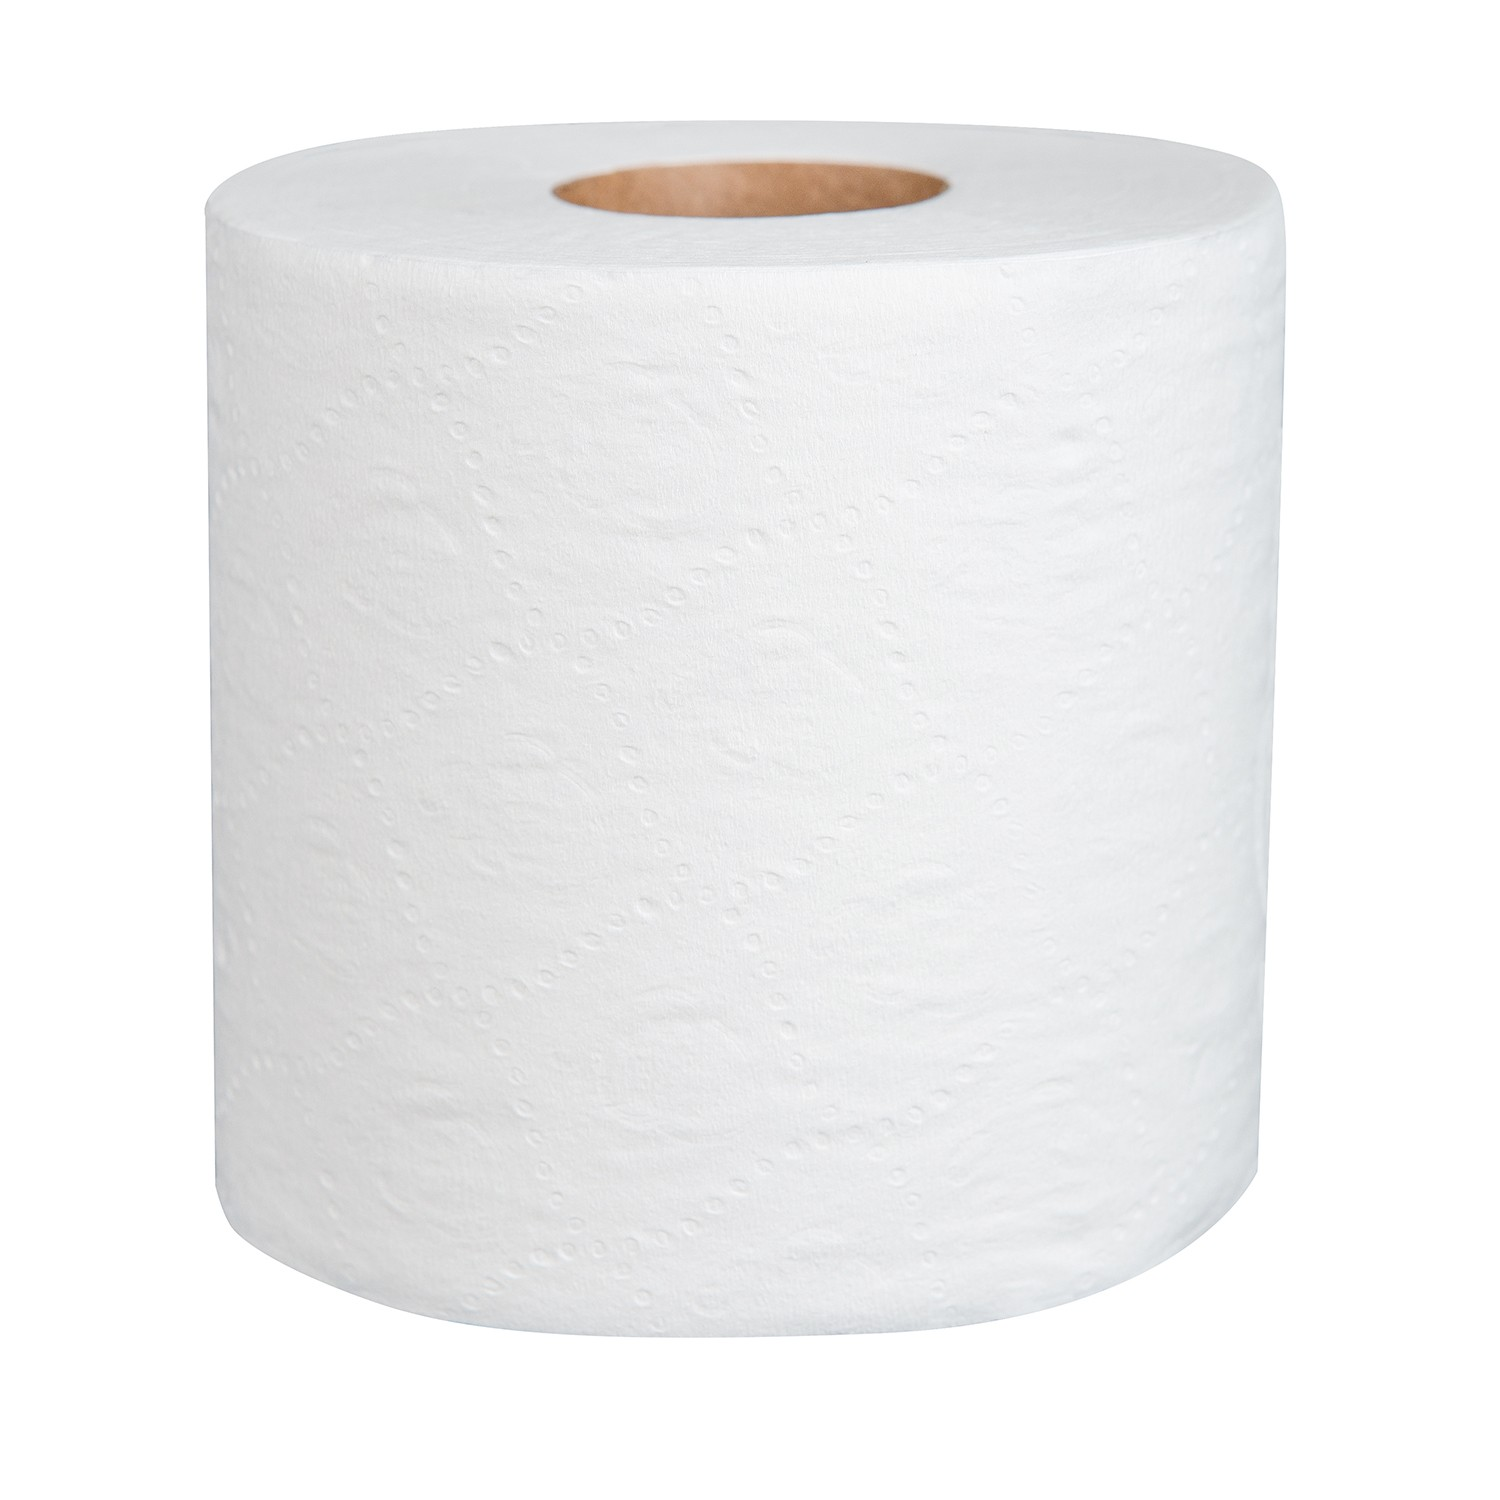 """TOTALPACK® 3 15/16' x 3 1/2"""", 2 Ply High quality tissue 500 Sheets, 96 Rolls per Case"""